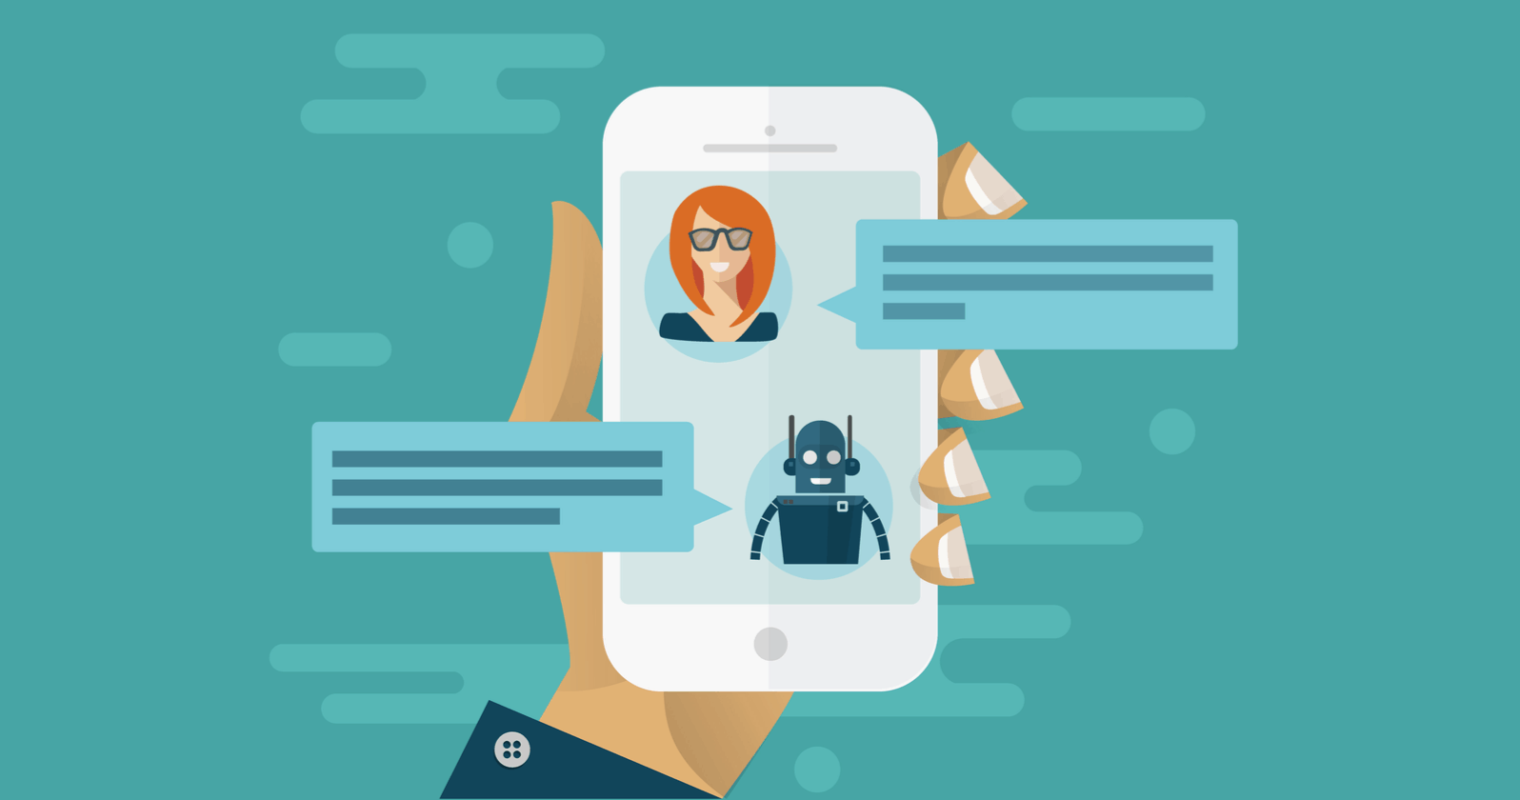 Your Step-by-Step Guide to Building a Quick Q&A Chatbot